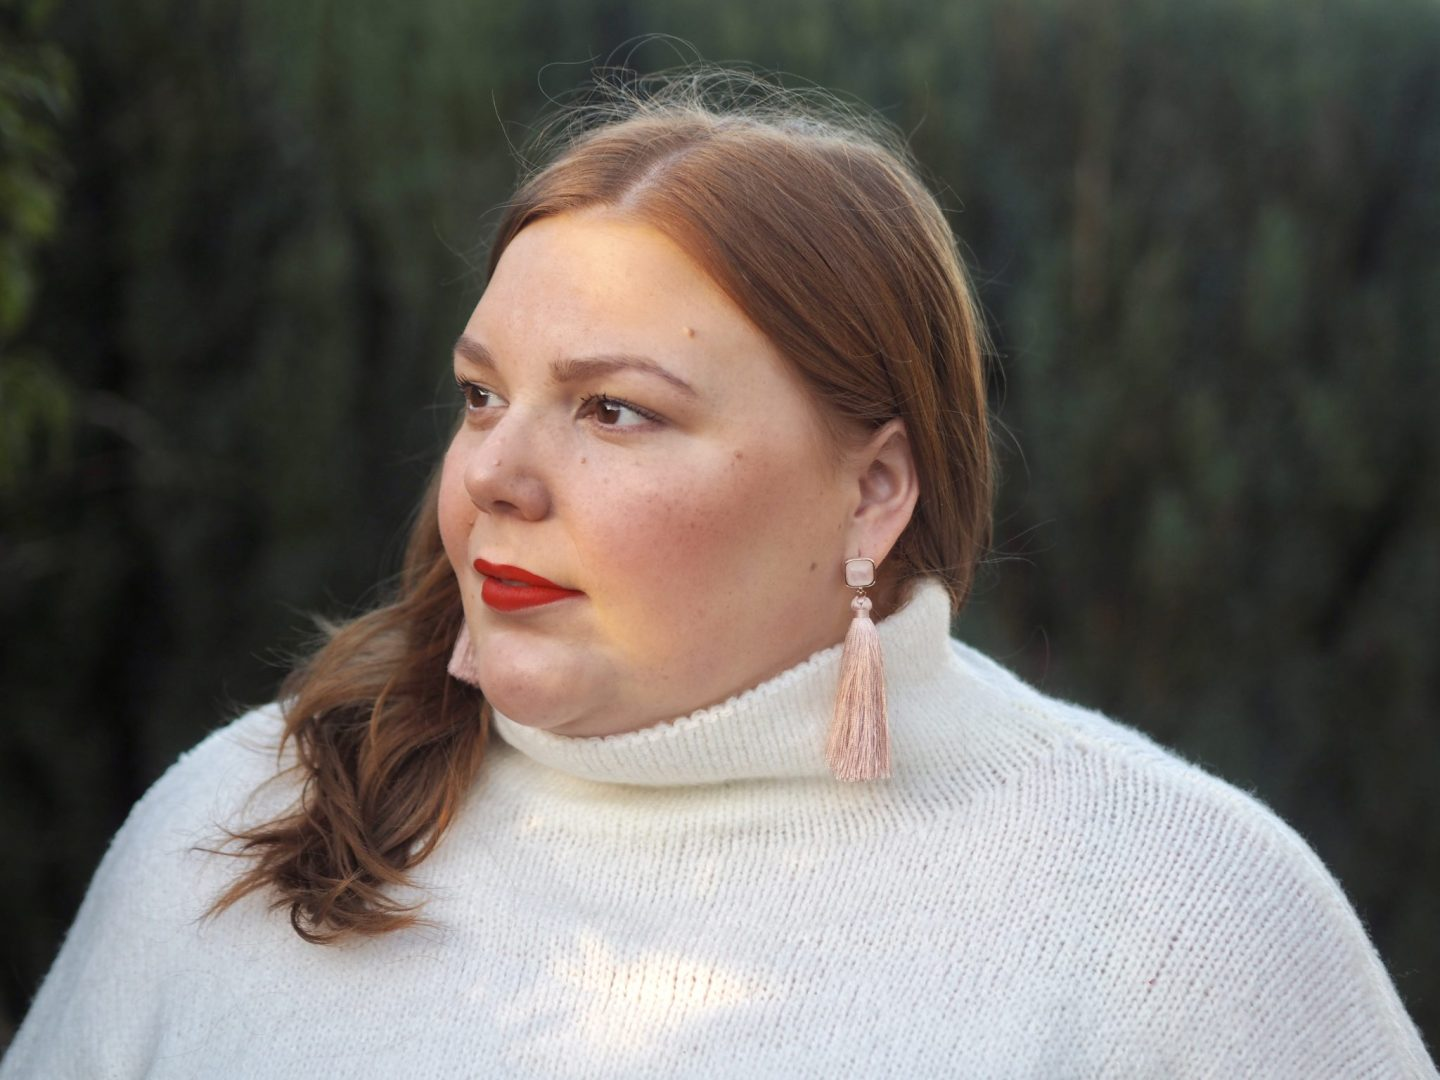 plus size blogger and influencer - pretty big butterflies